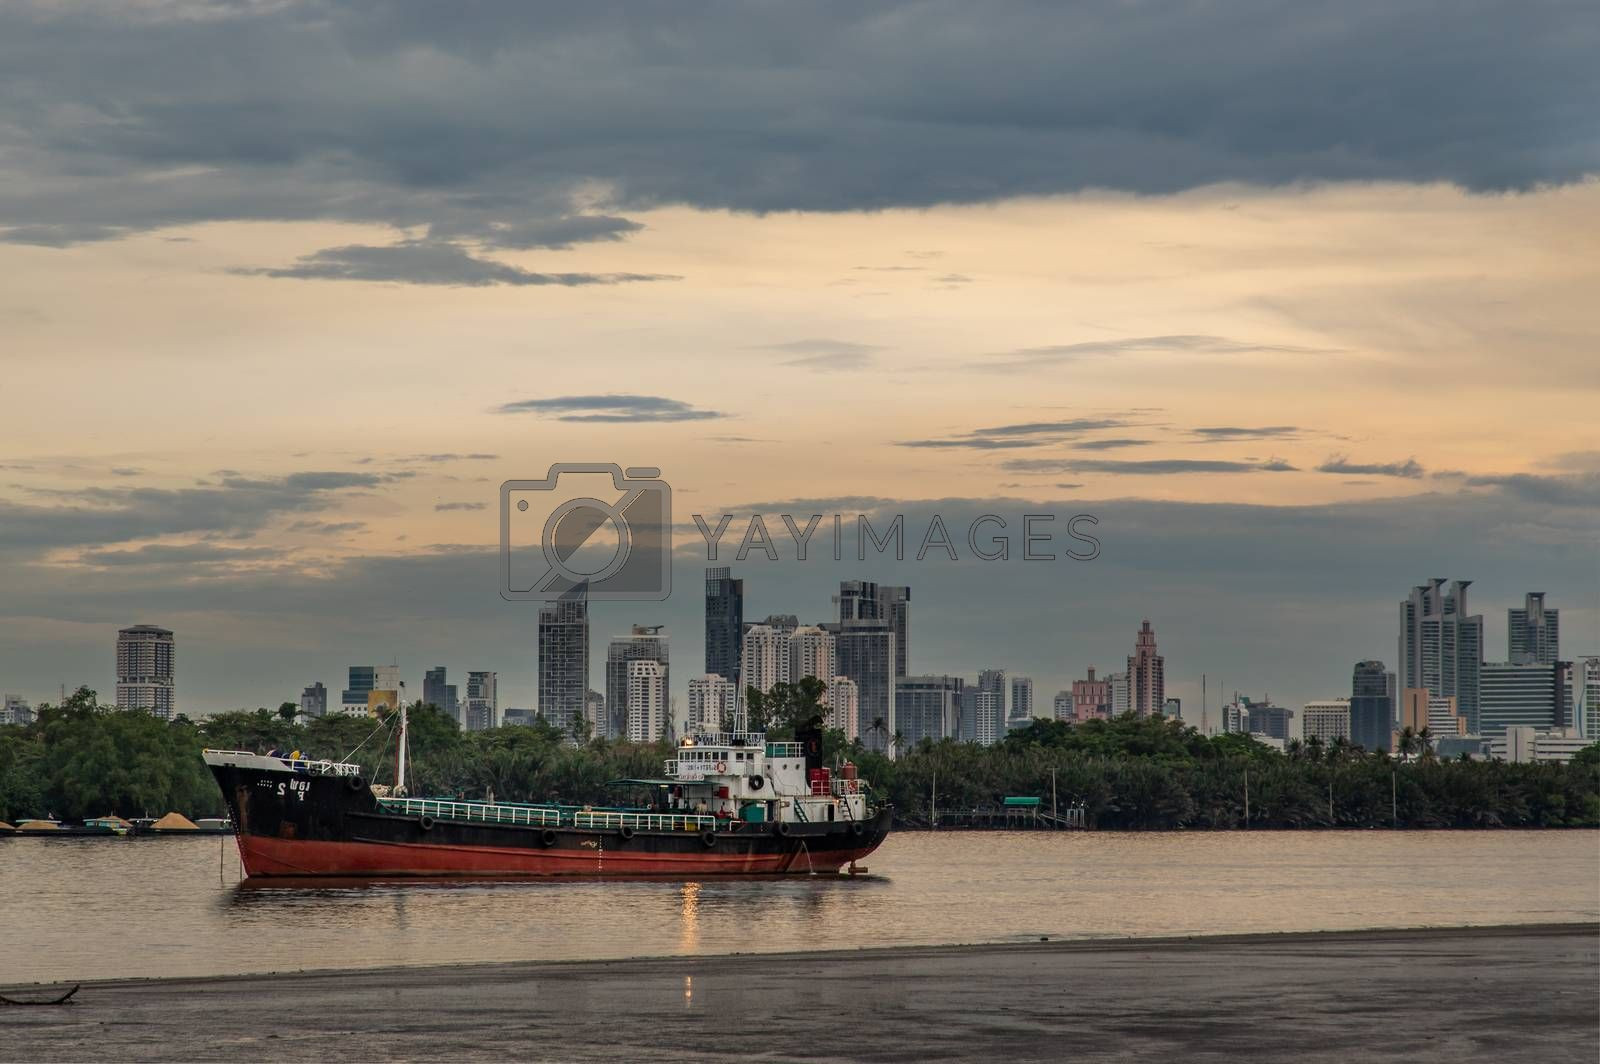 A cargo ship parked in the middle of the Chao phraya river on ev by tosirikul